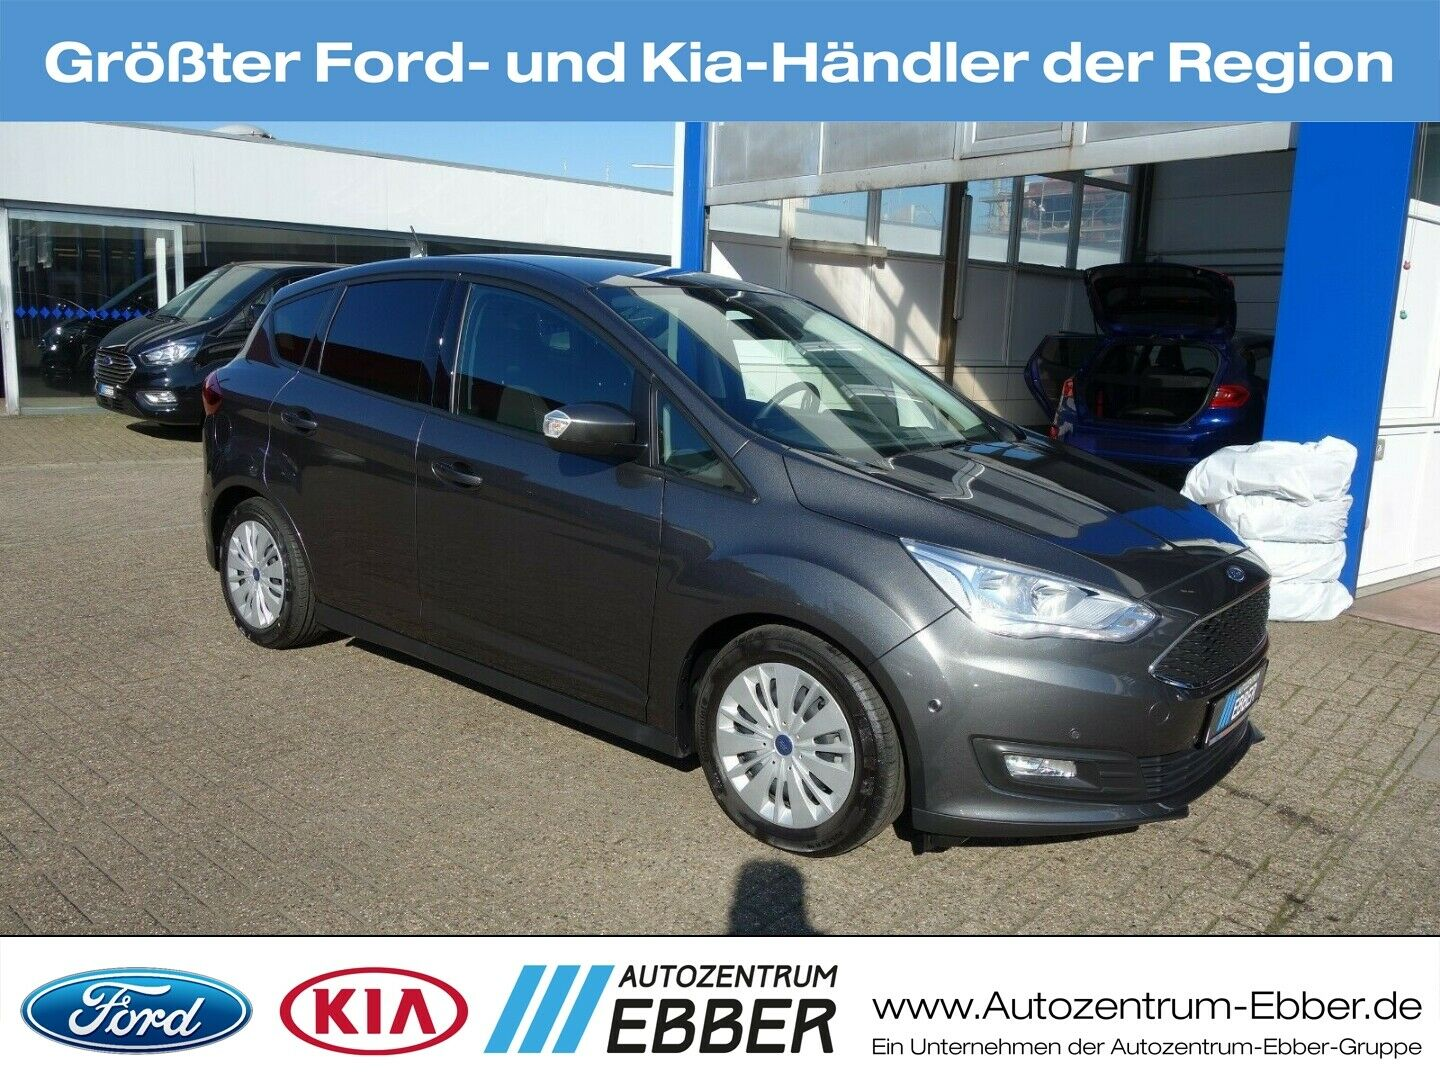 FORD C-Max 1.0 EcoBoost Business, Sync 3